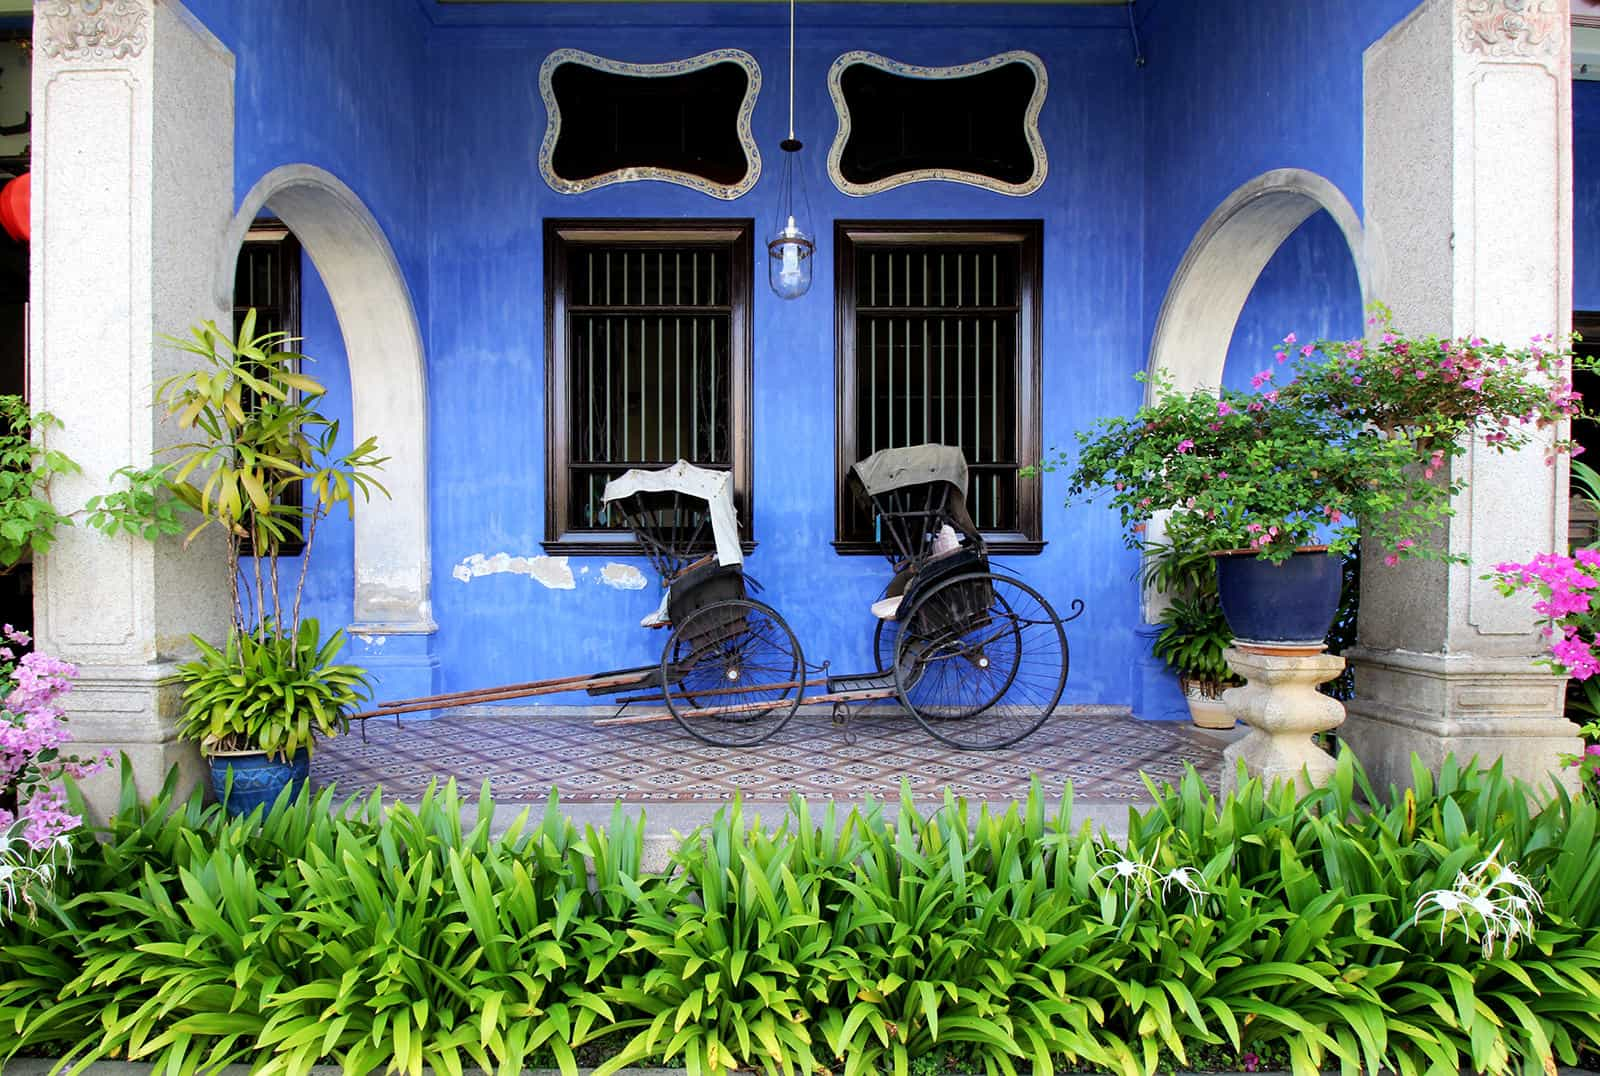 boutique-hotel-penang-island-blue-mansion-architecture-06-1_x4vh6i Architecture